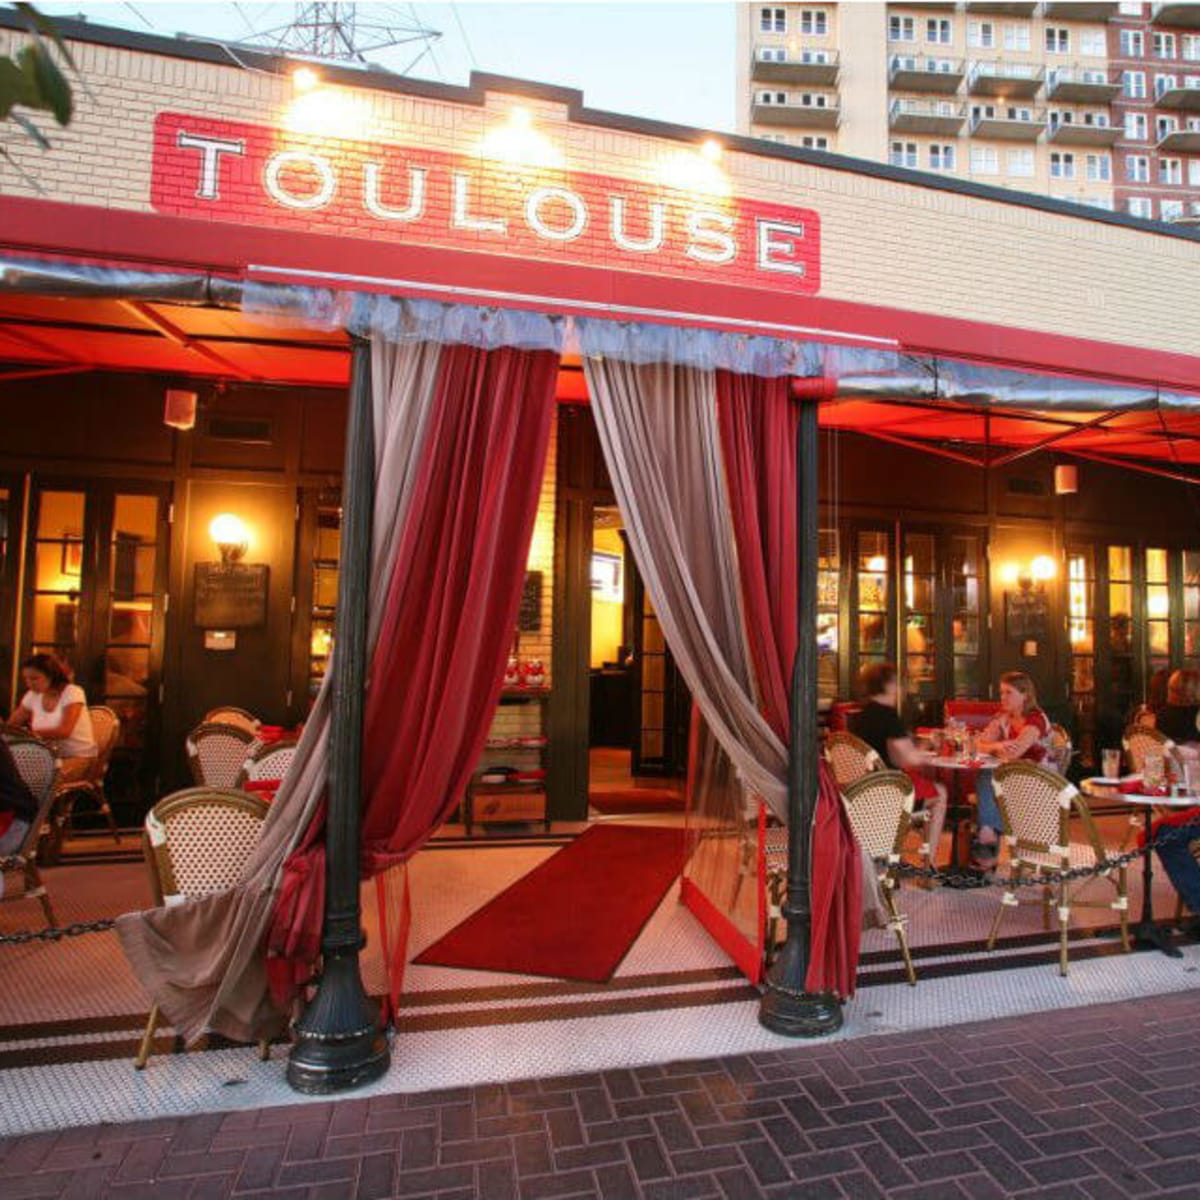 Toulouse Cafe & Bar on Knox Street in Dallas